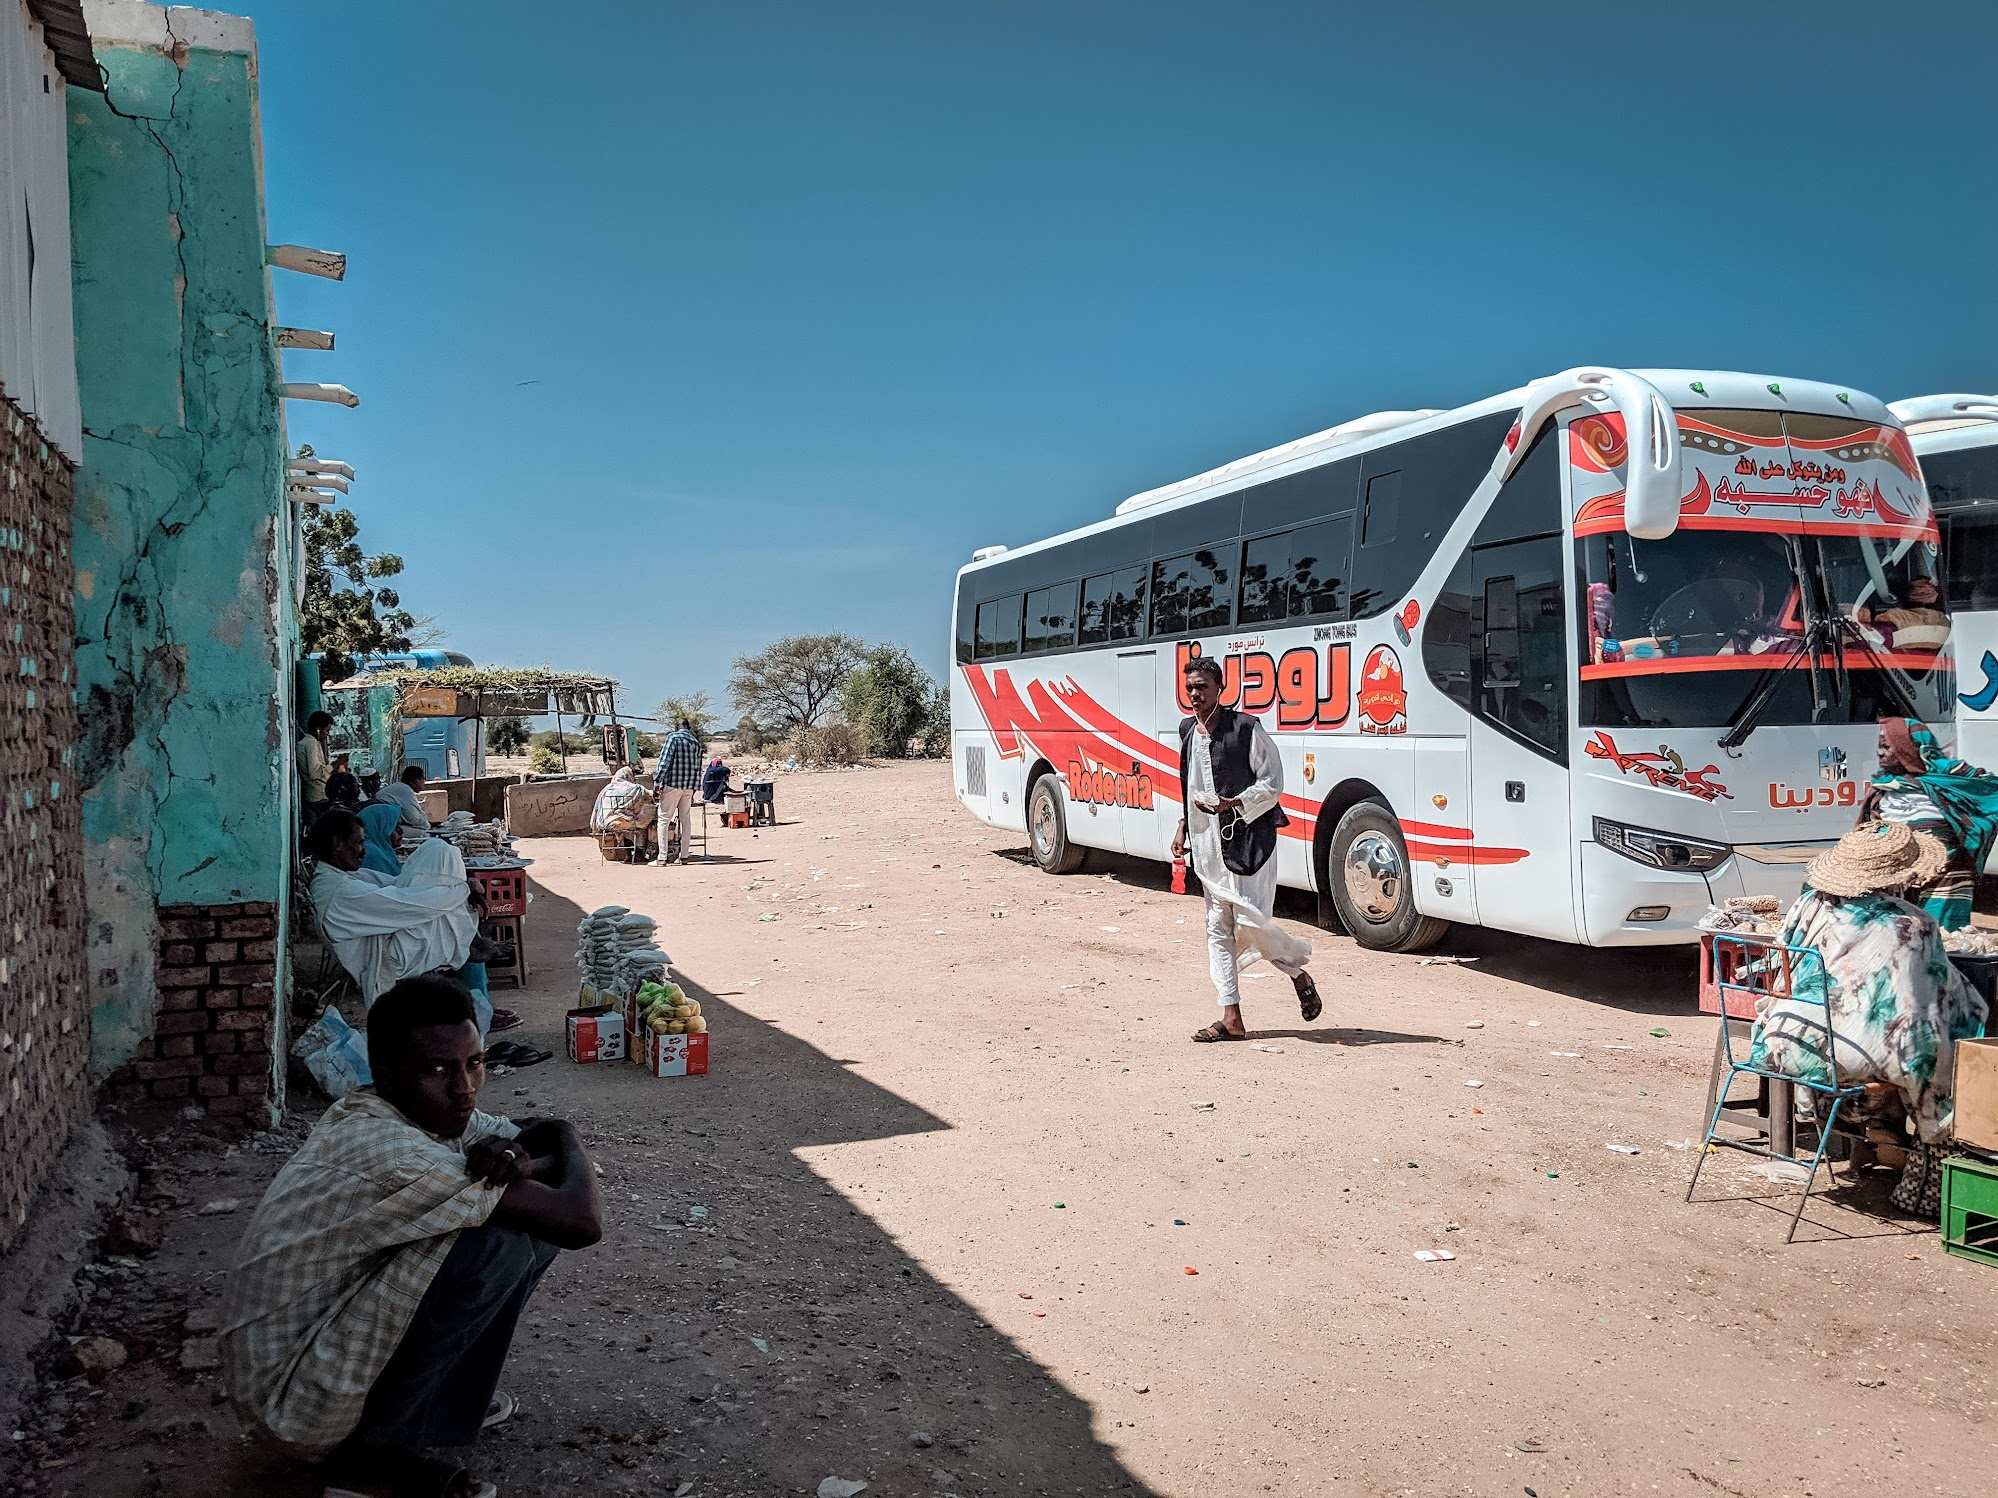 A bus during a rest break in Sudan